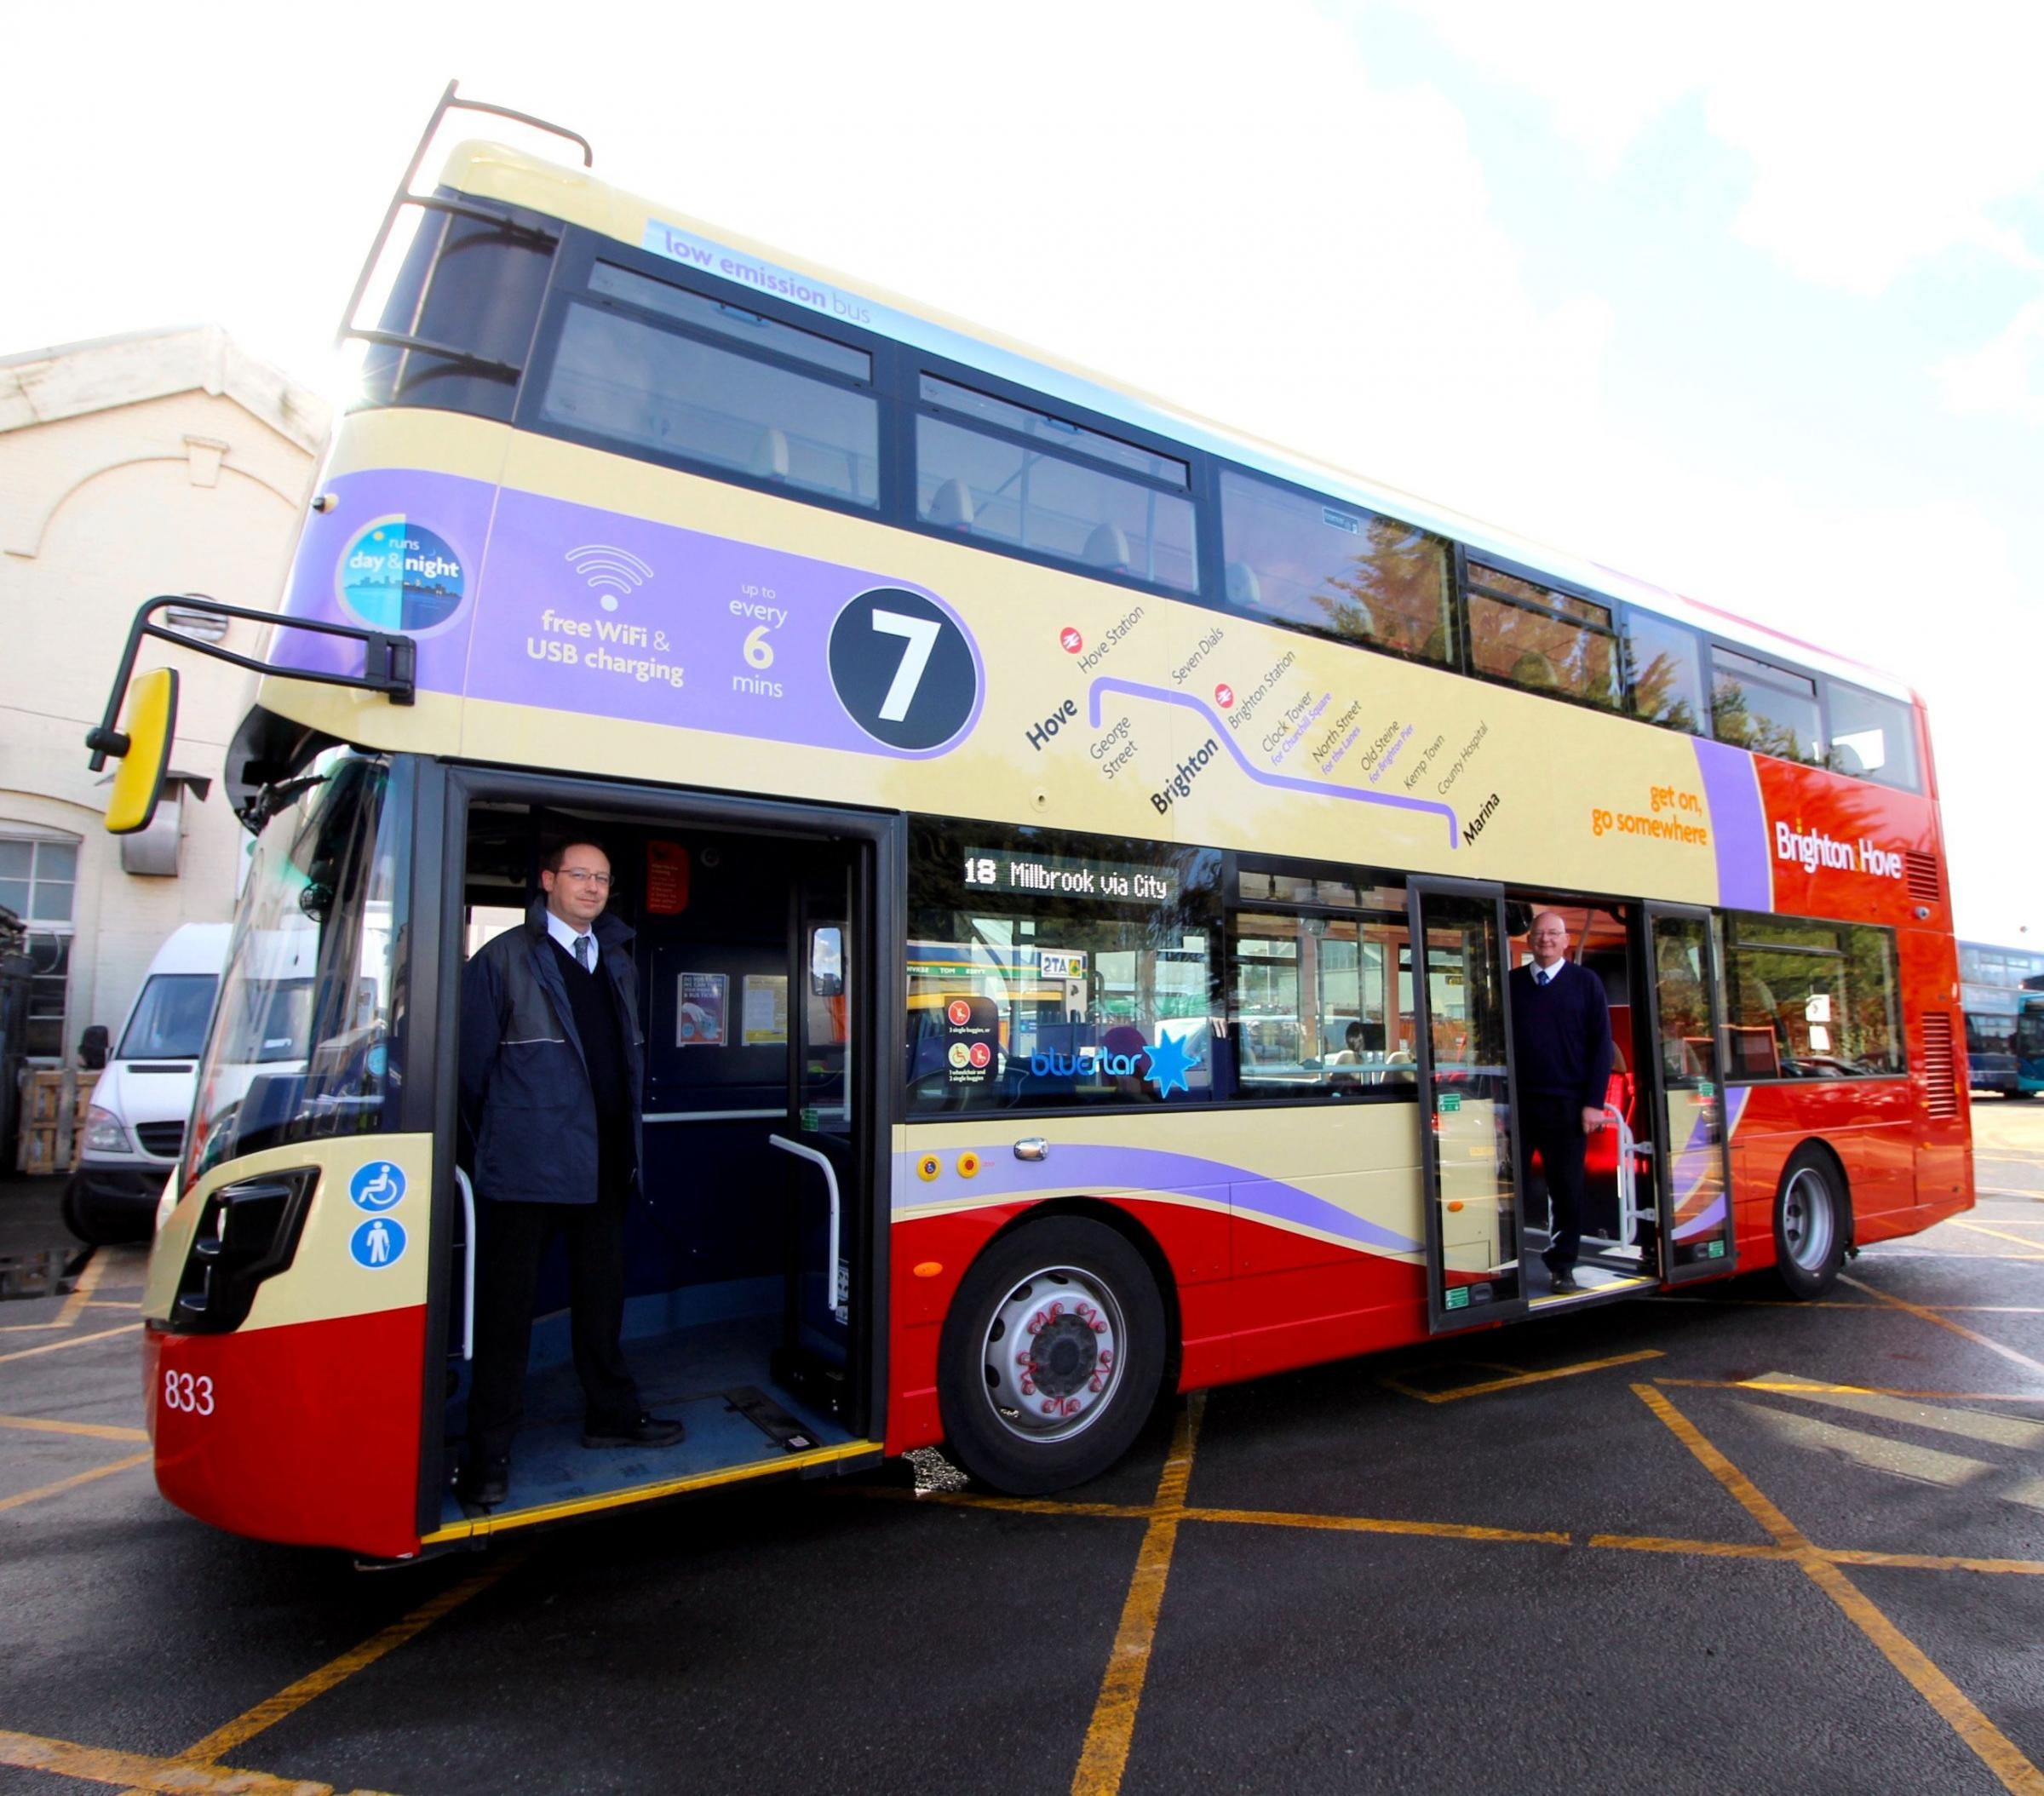 The Brighton and Hove coloured bus that has been spotted around Southampton. But don't worry, it is a Bluestar service.